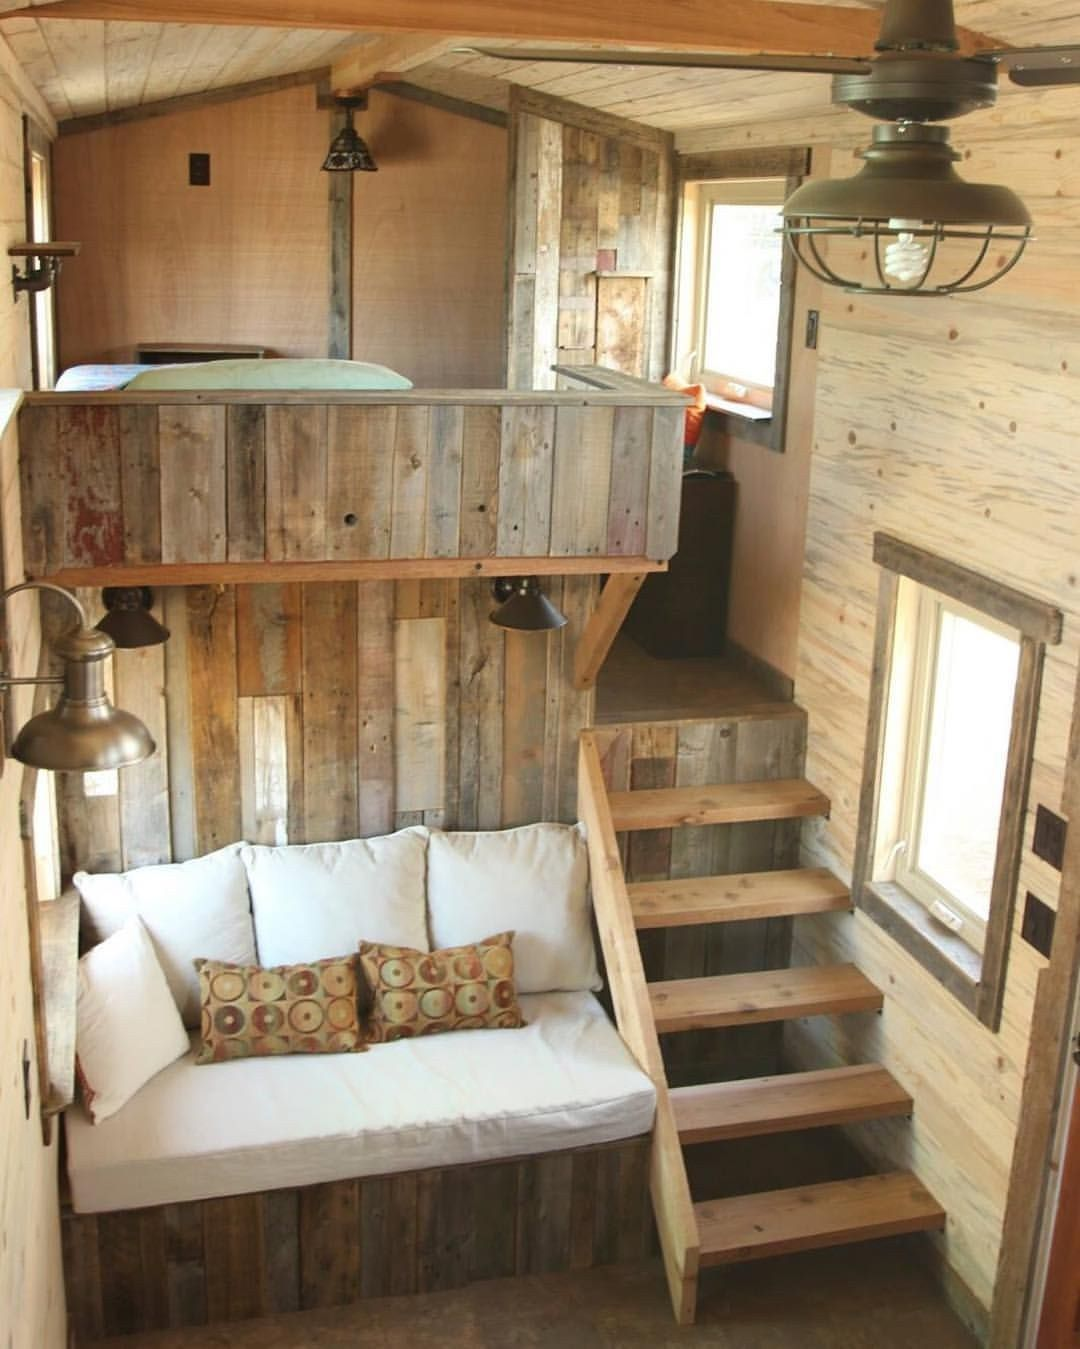 Tiny House Ideas: Cool Tiny House Design Ideas To Inspire You 14